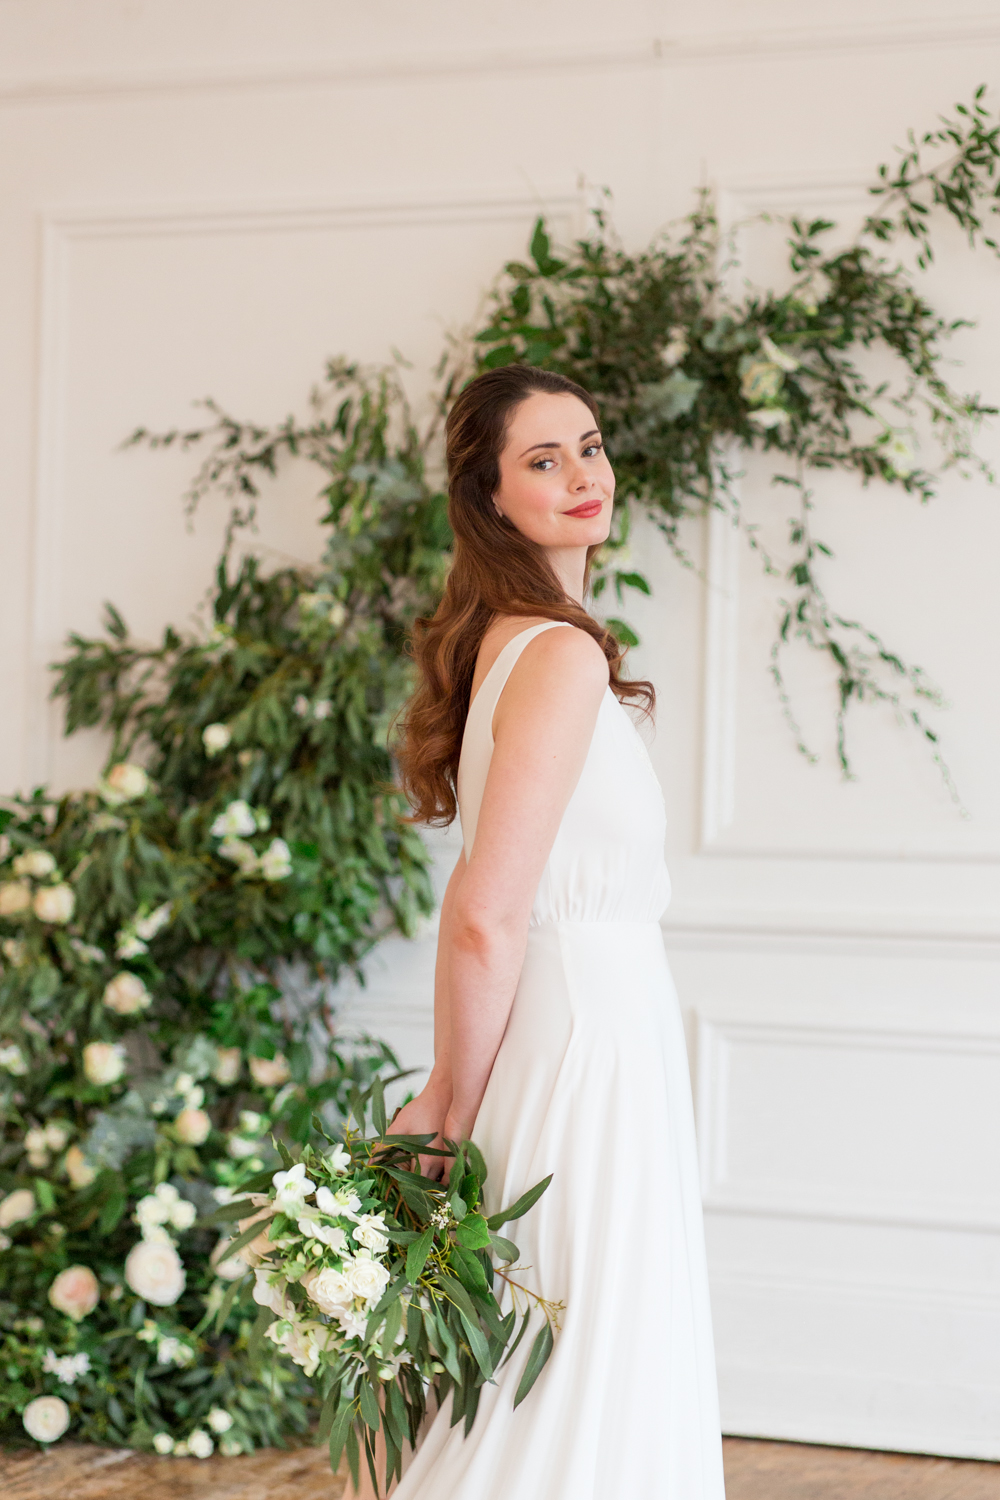 The Timeless Stylist - Romantic and Elegant Wedding Design and Styling